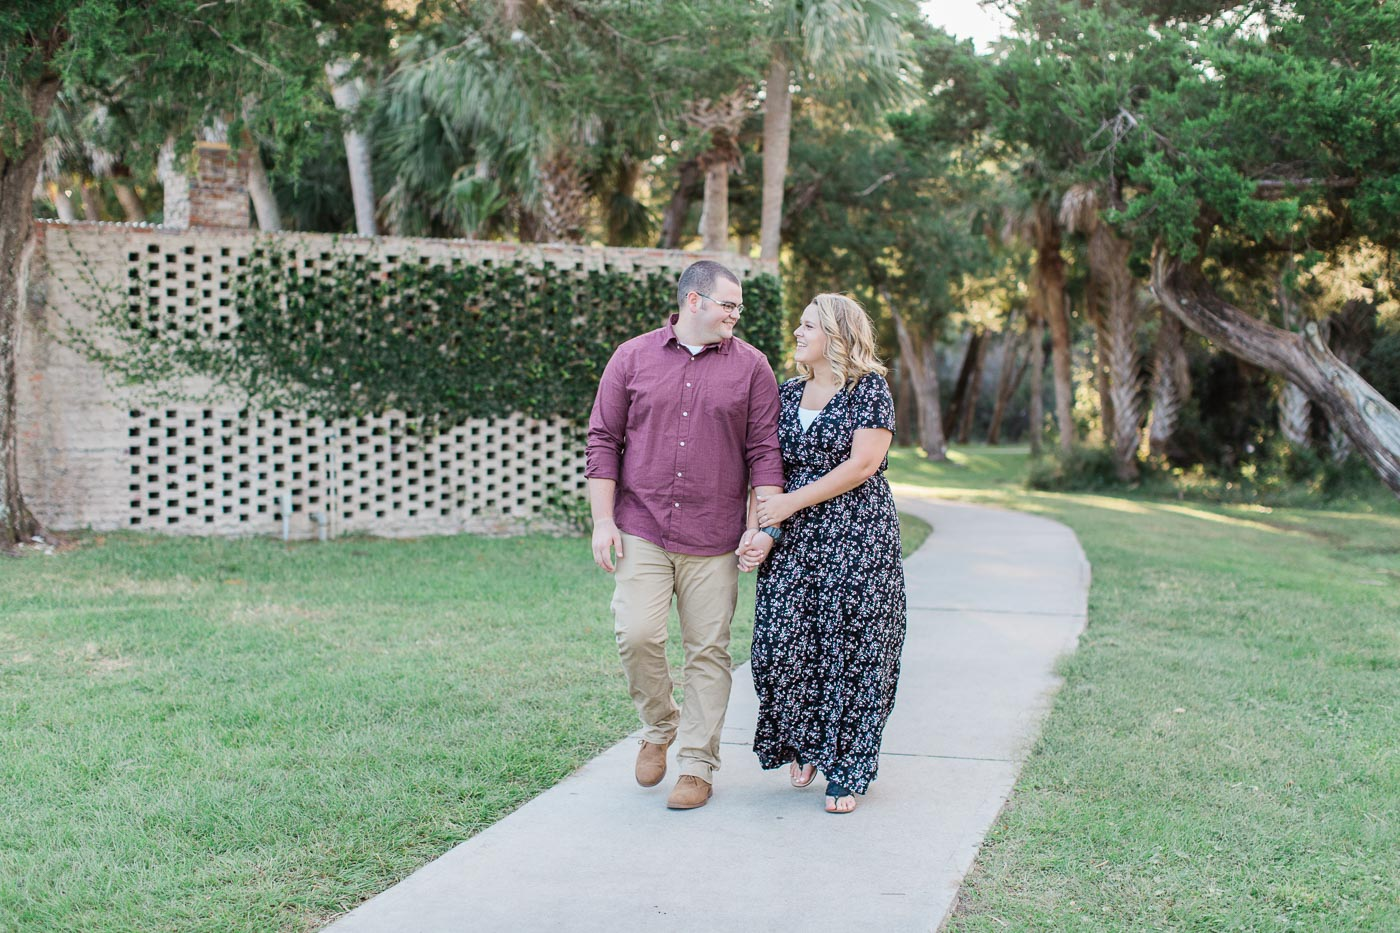 Amazing nature at Huntington beach state park engagement session